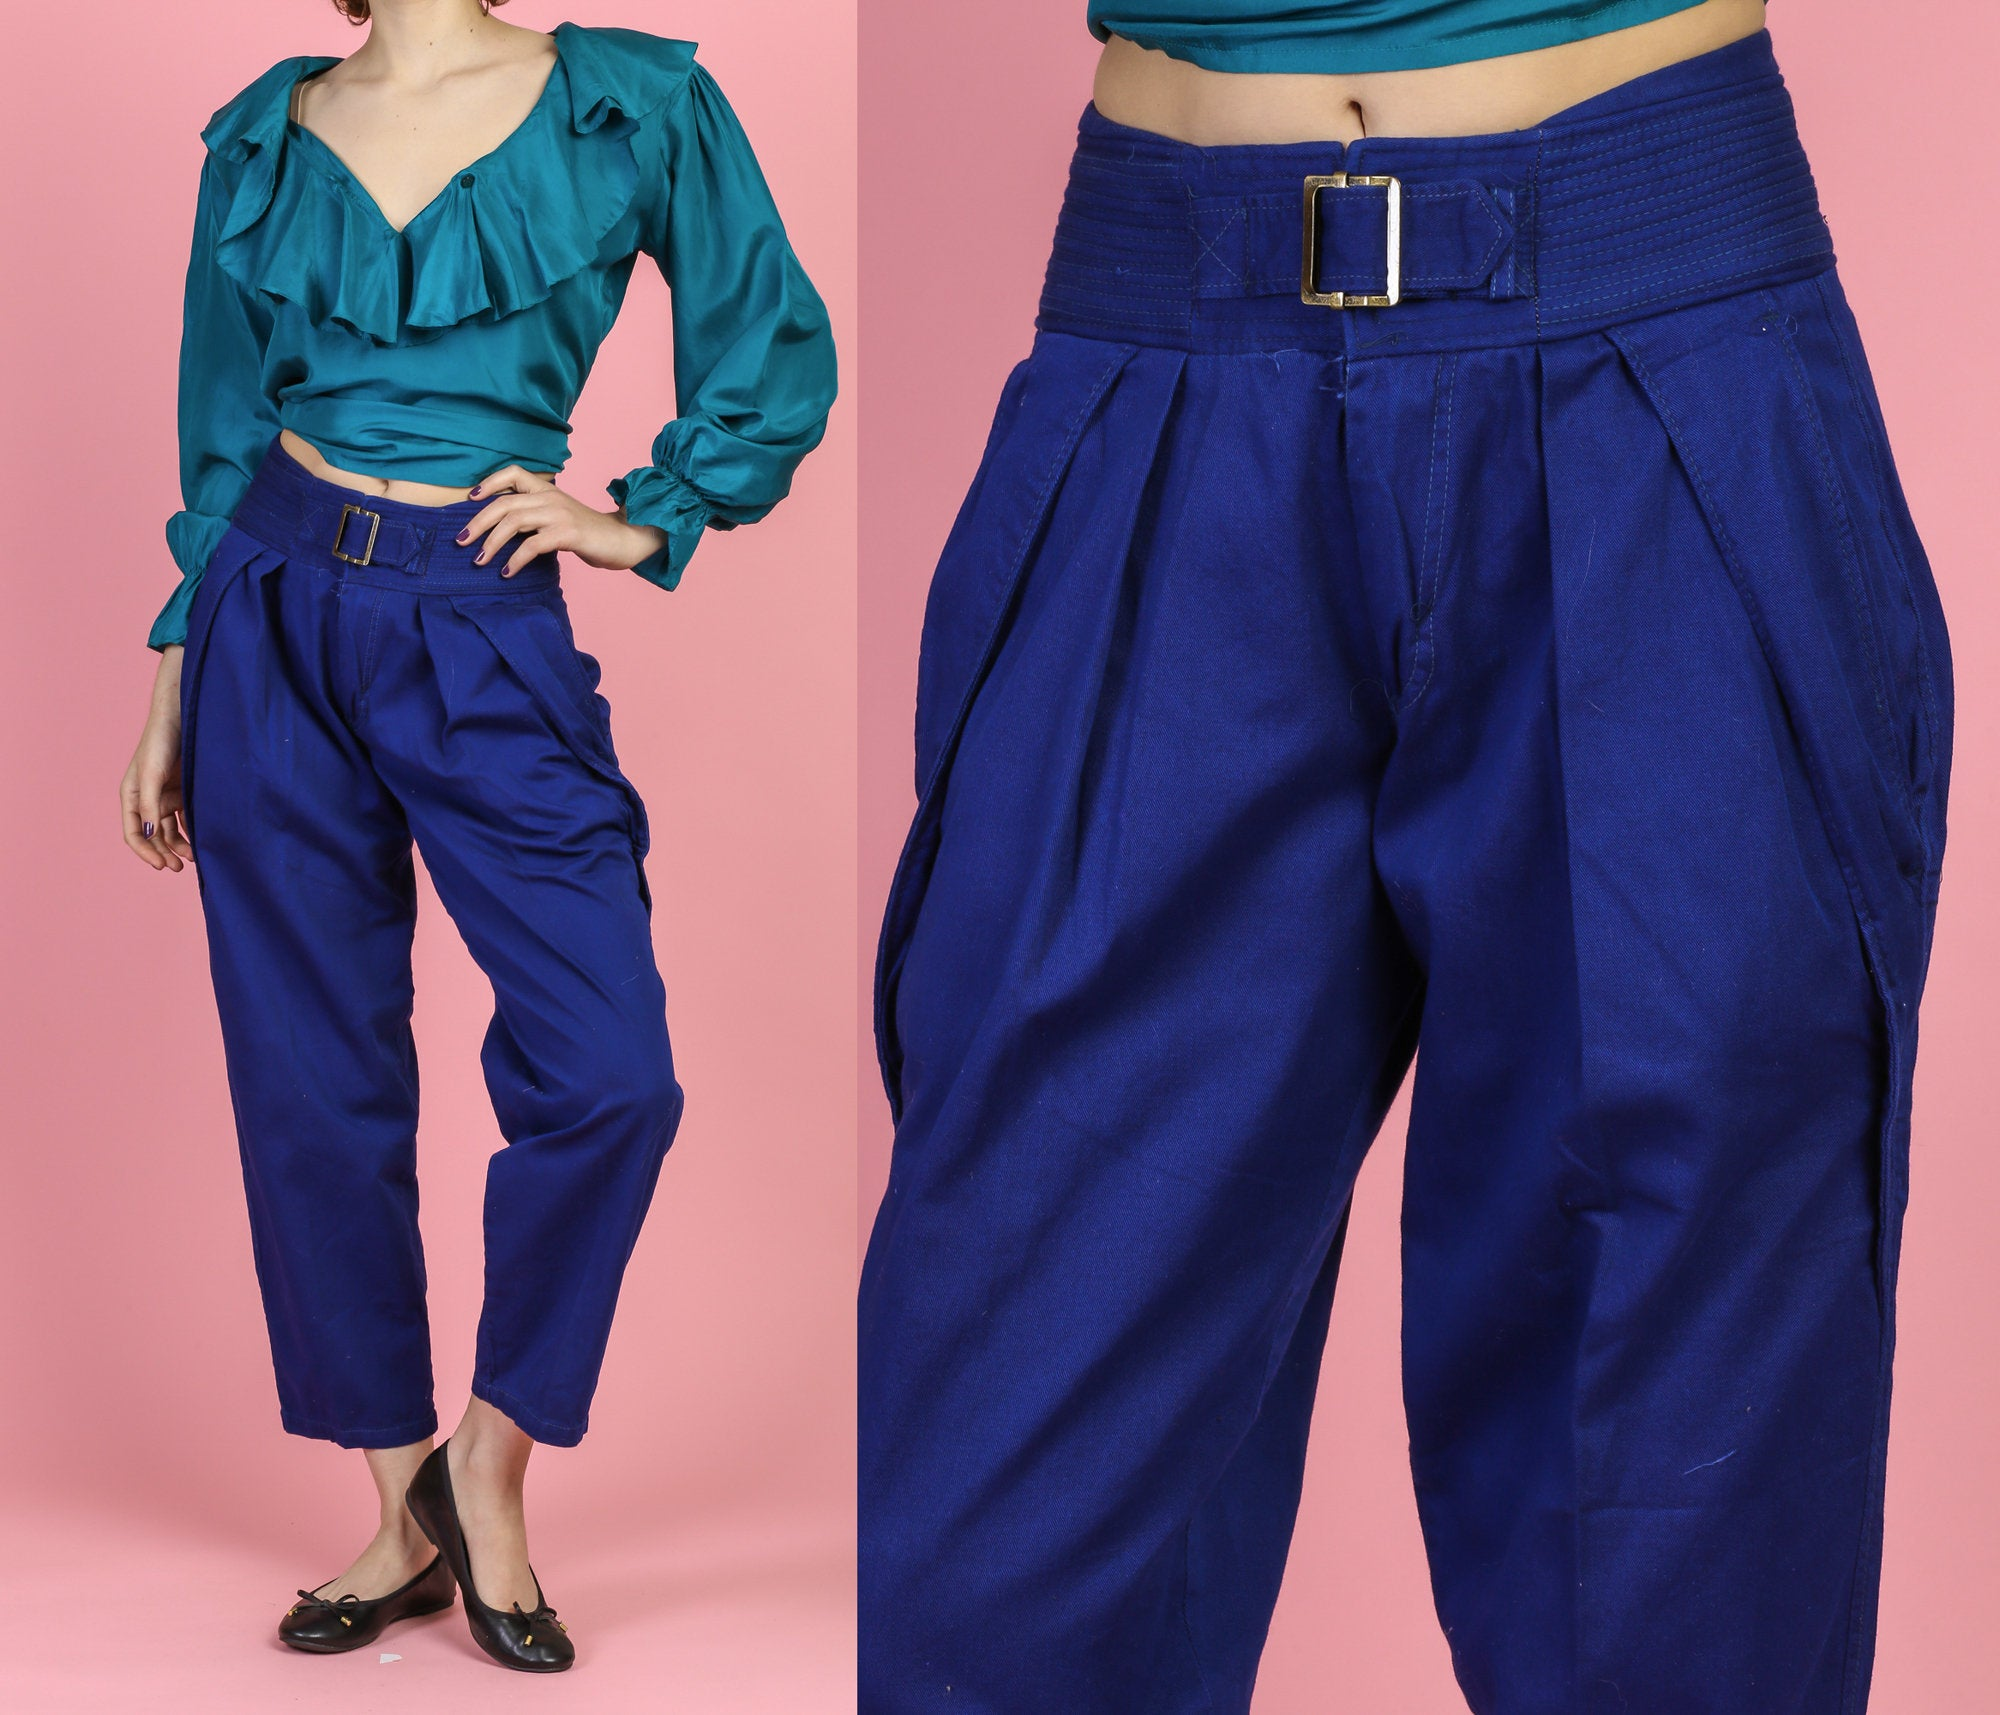 Vintage High Waisted Royal Blue Belted Pants - Small to Medium